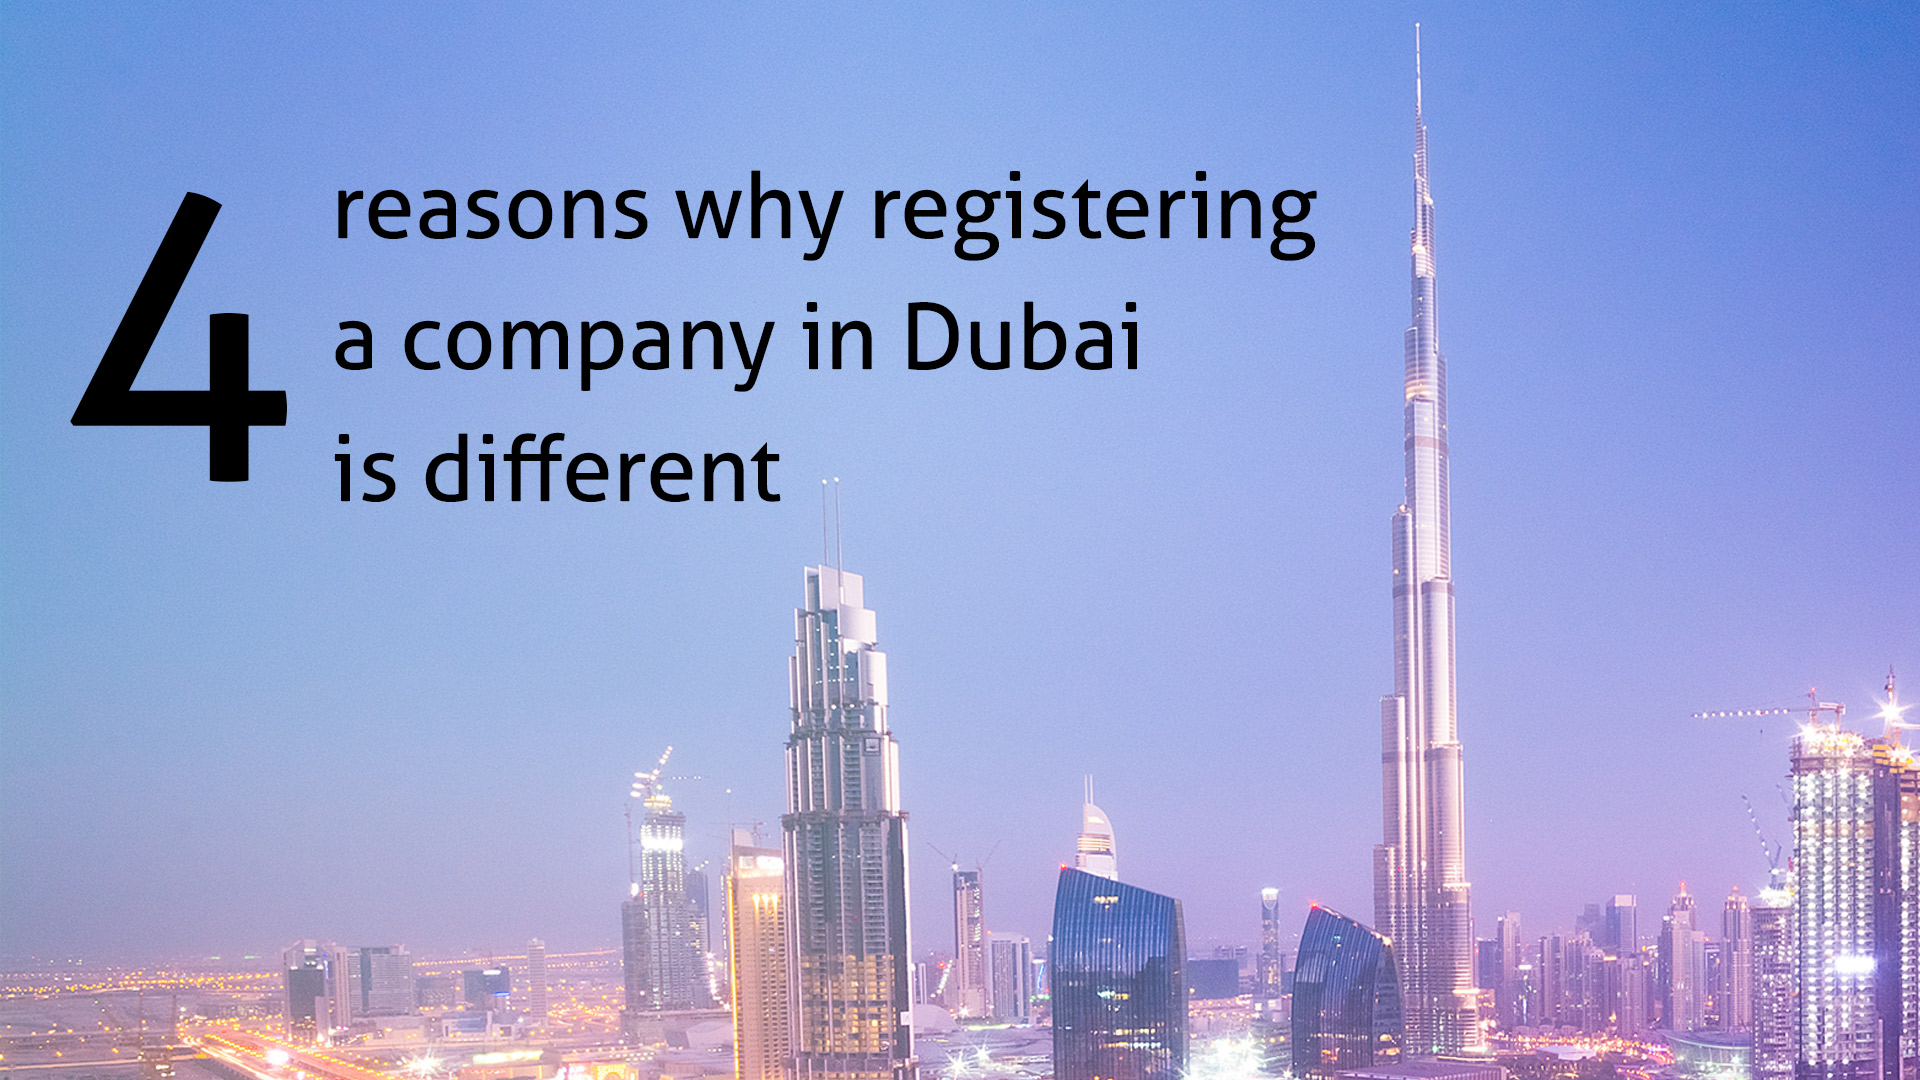 4 reasons why registering a company in Dubai is different